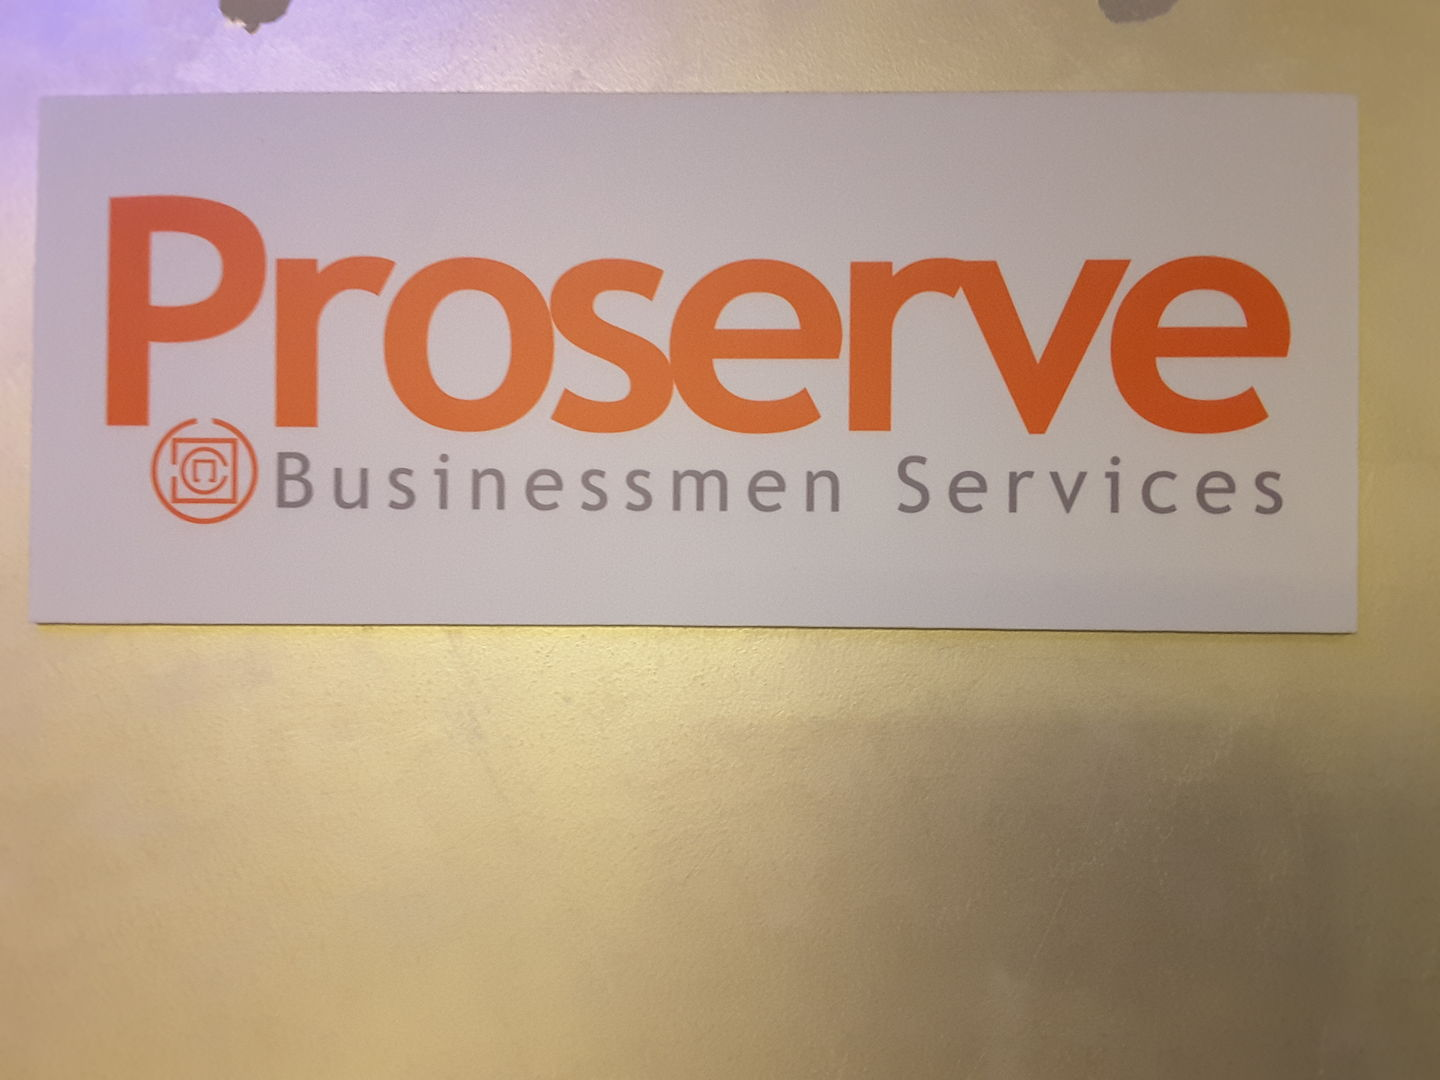 HiDubai-business-proserve-businessmen-services-b2b-services-printing-typing-services-business-bay-dubai-2